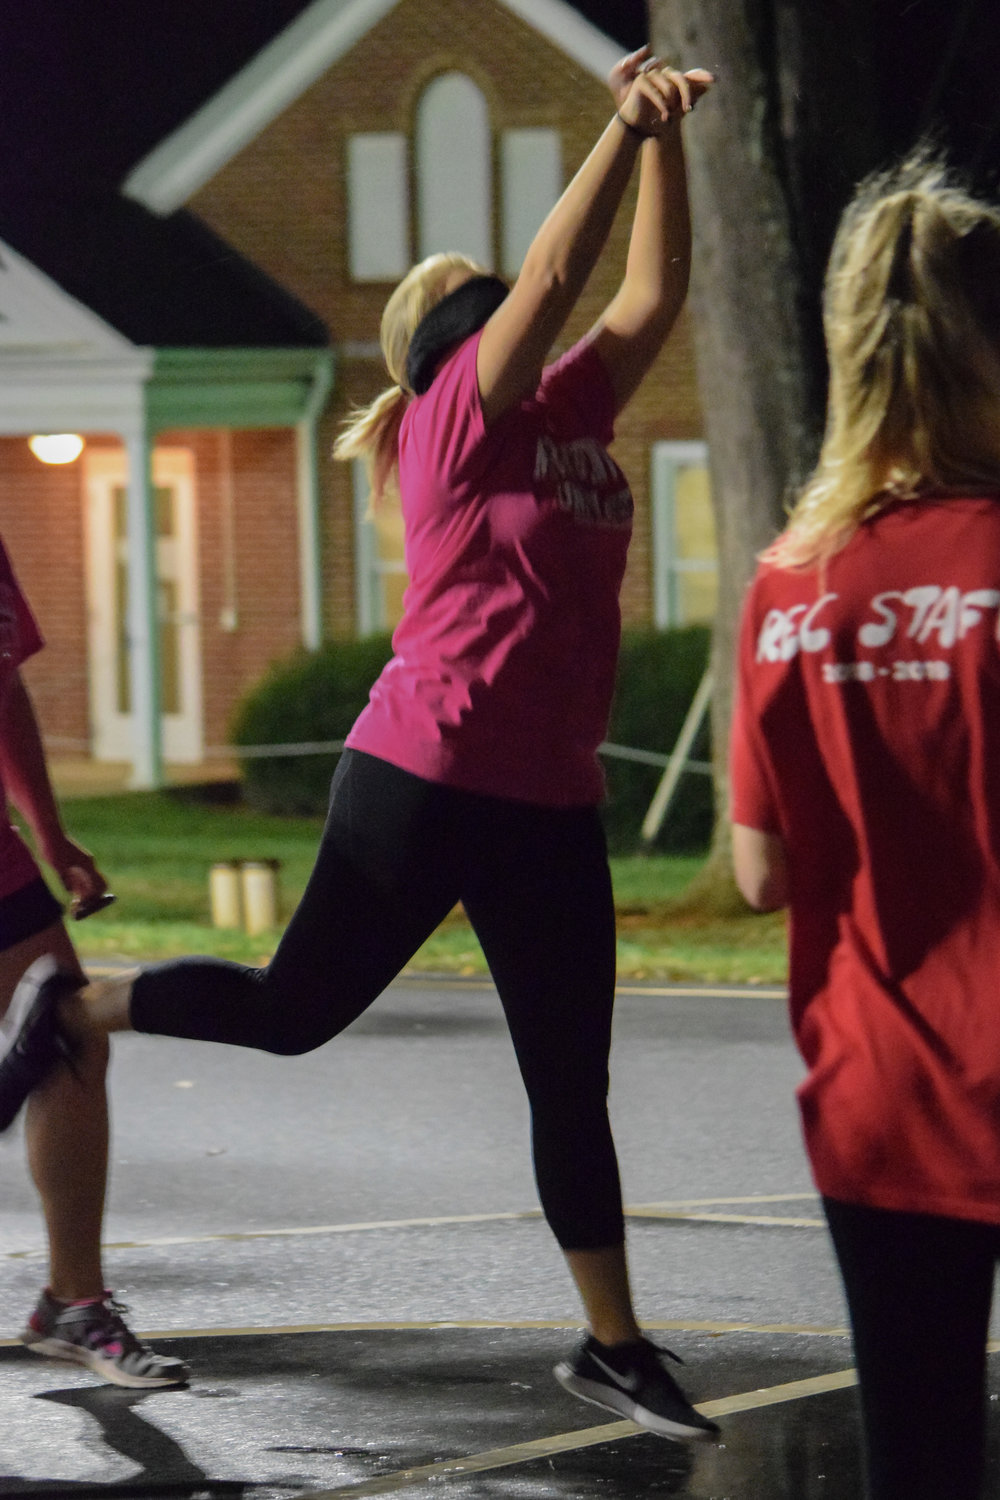 Big and Little club member Mary Collins, sophomore, makes the effort to make a basket in ten shots while blindfolded.